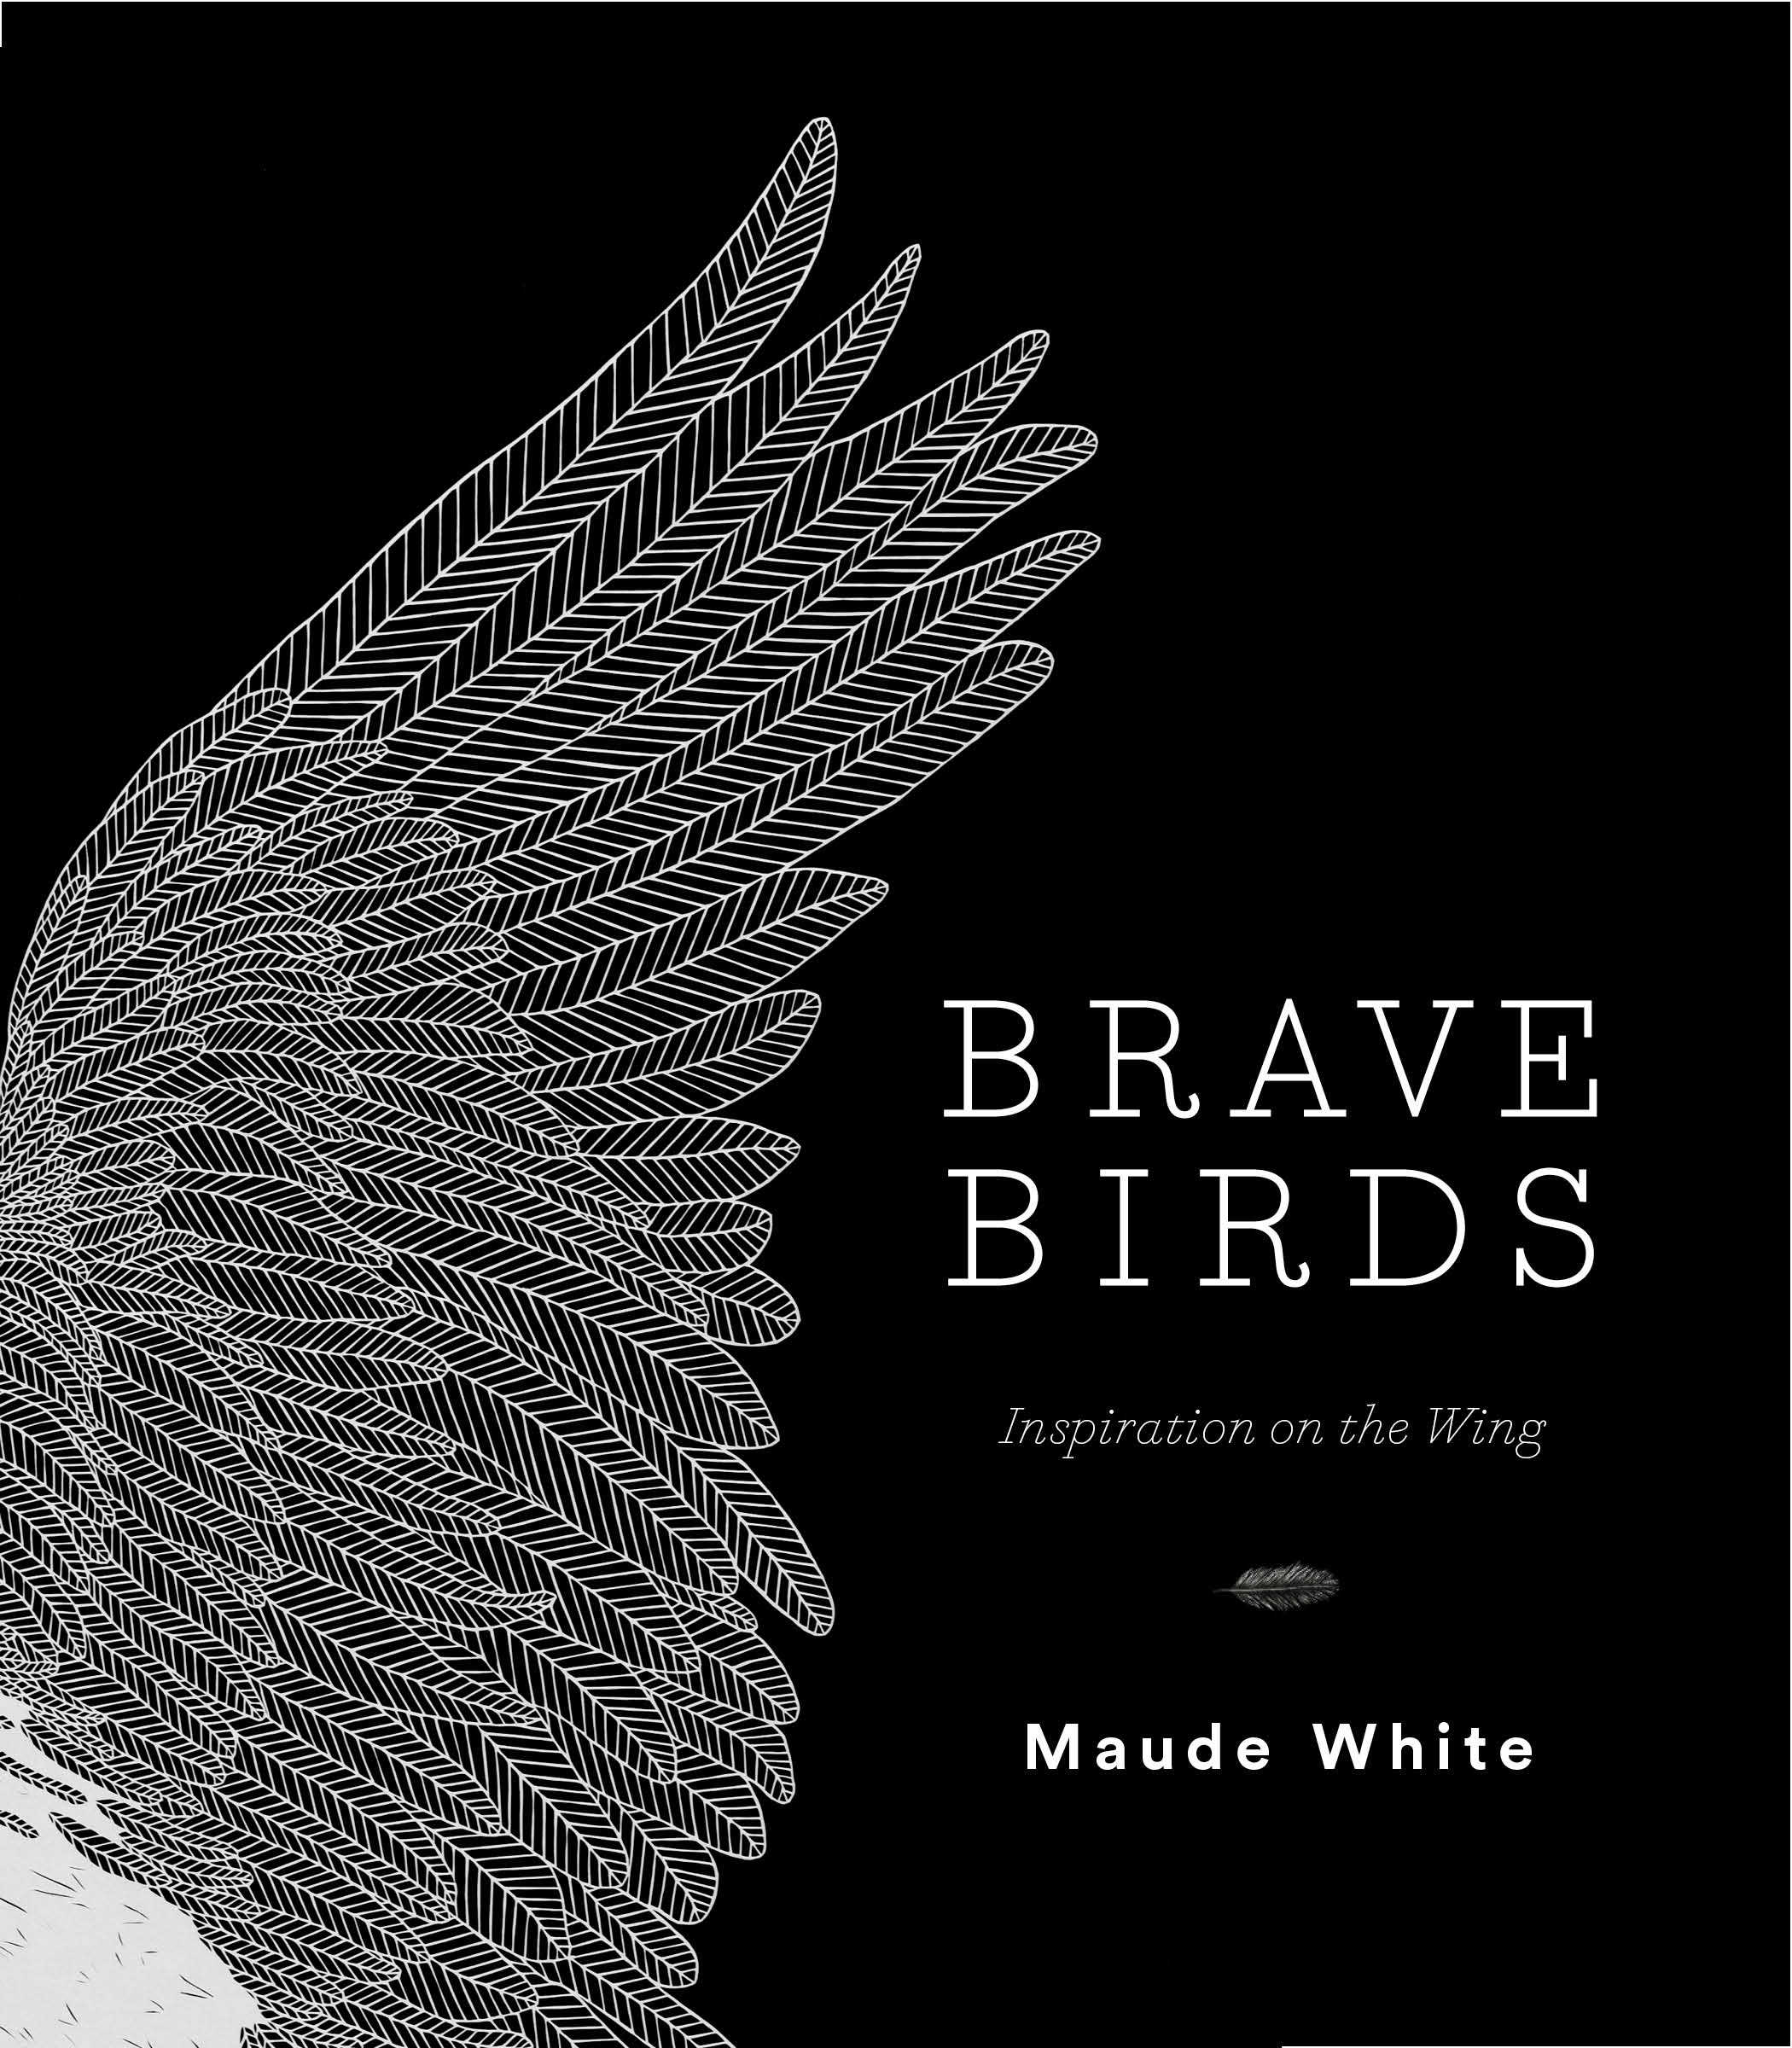 - In Brave Birds, cut-paper artist and writer Maude White presents an entirely new collection of sixty-five stunning cut-paper birds. As a source of inspiration, each bird is paired with an original message of kindness and strength associated with its particular traits to encourage bravery and perseverance. Inside, you'll find birds for experiencing Joy, Creativity, Patience, Kindness, Resilience, Communication, Strength, Awareness, Action, and Transformation, and each composition reflects thousands of intricate cuts, lending an astounding level of texture to these delicate and ethereal birds. Appealing to any bird lover or collector of bird art, Brave Birds is a beautiful resource for those wishing to practice a life of kindness and empathy.